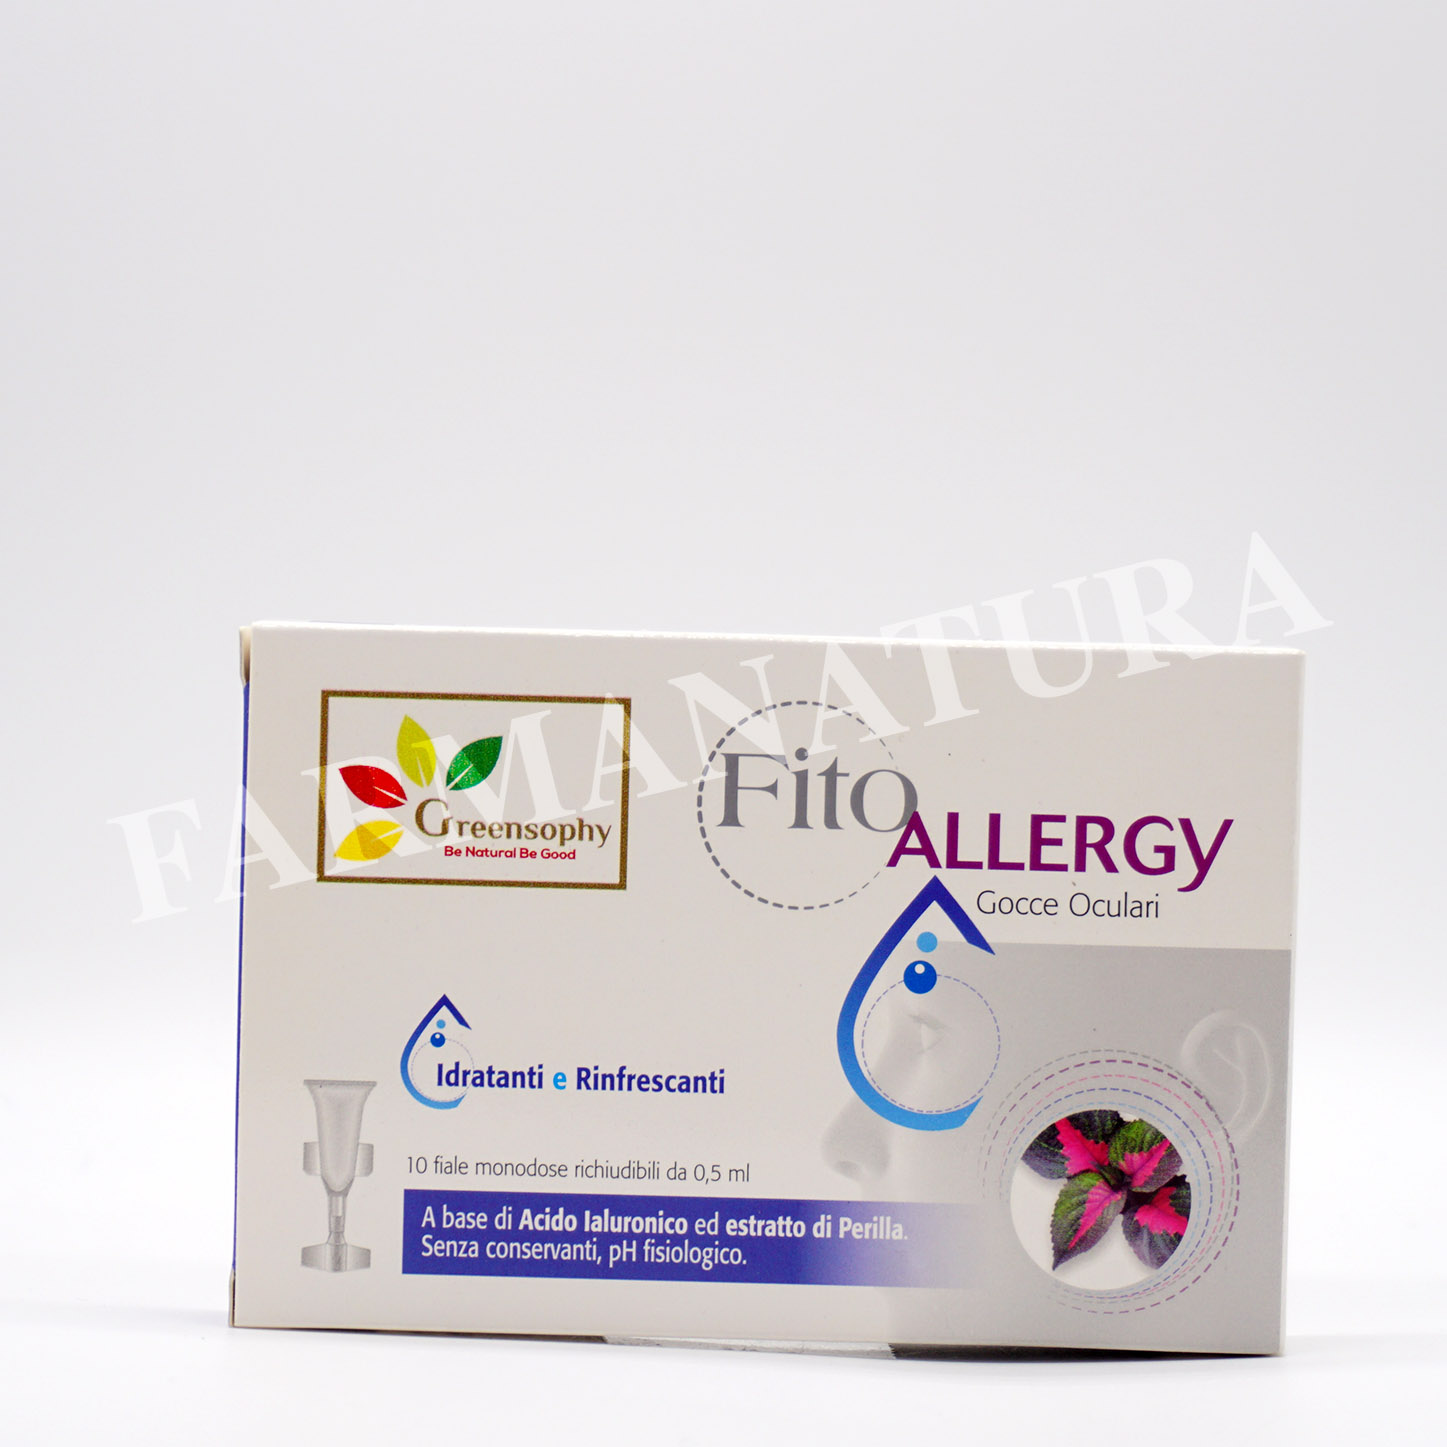 Greensophy Fitoallergy Gocce Oculari 10X0.5Ml